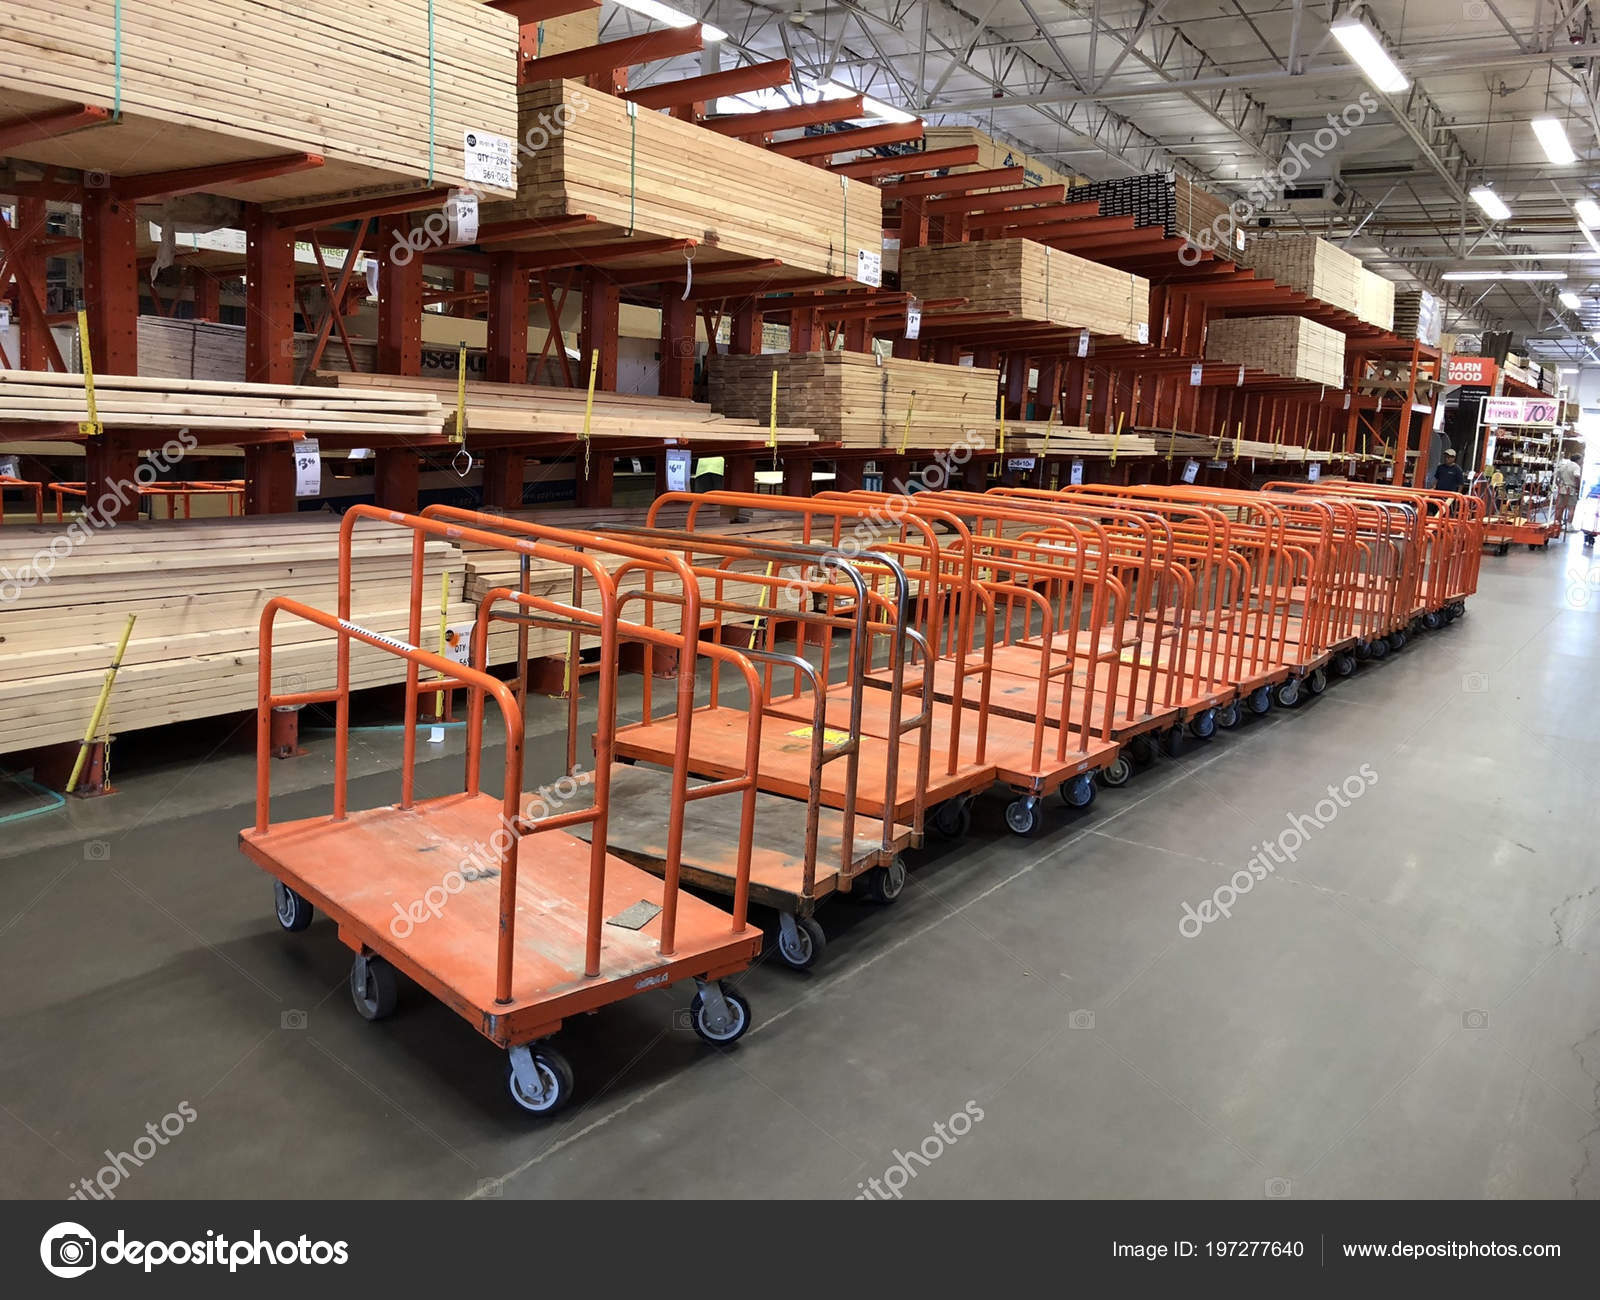 6c6a5f6fd4b Lumber carts located inside the lumber department of a Home Depot store.  Photo was taken in Gilbert Arizona located in ...